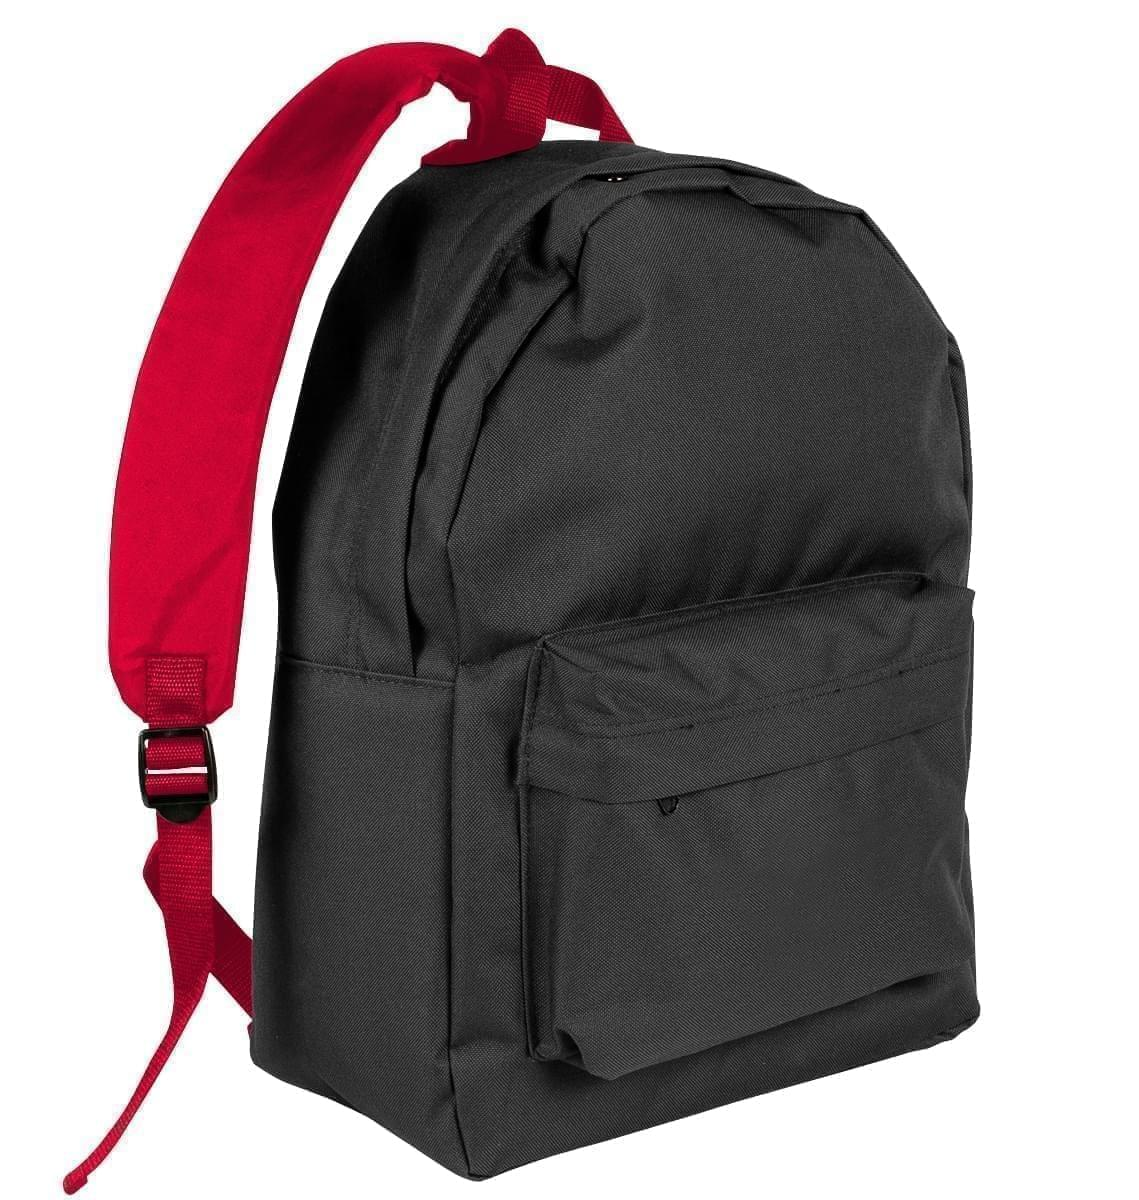 USA Made Nylon Poly Backpack Knapsacks, Black-Red, 8960-AO2